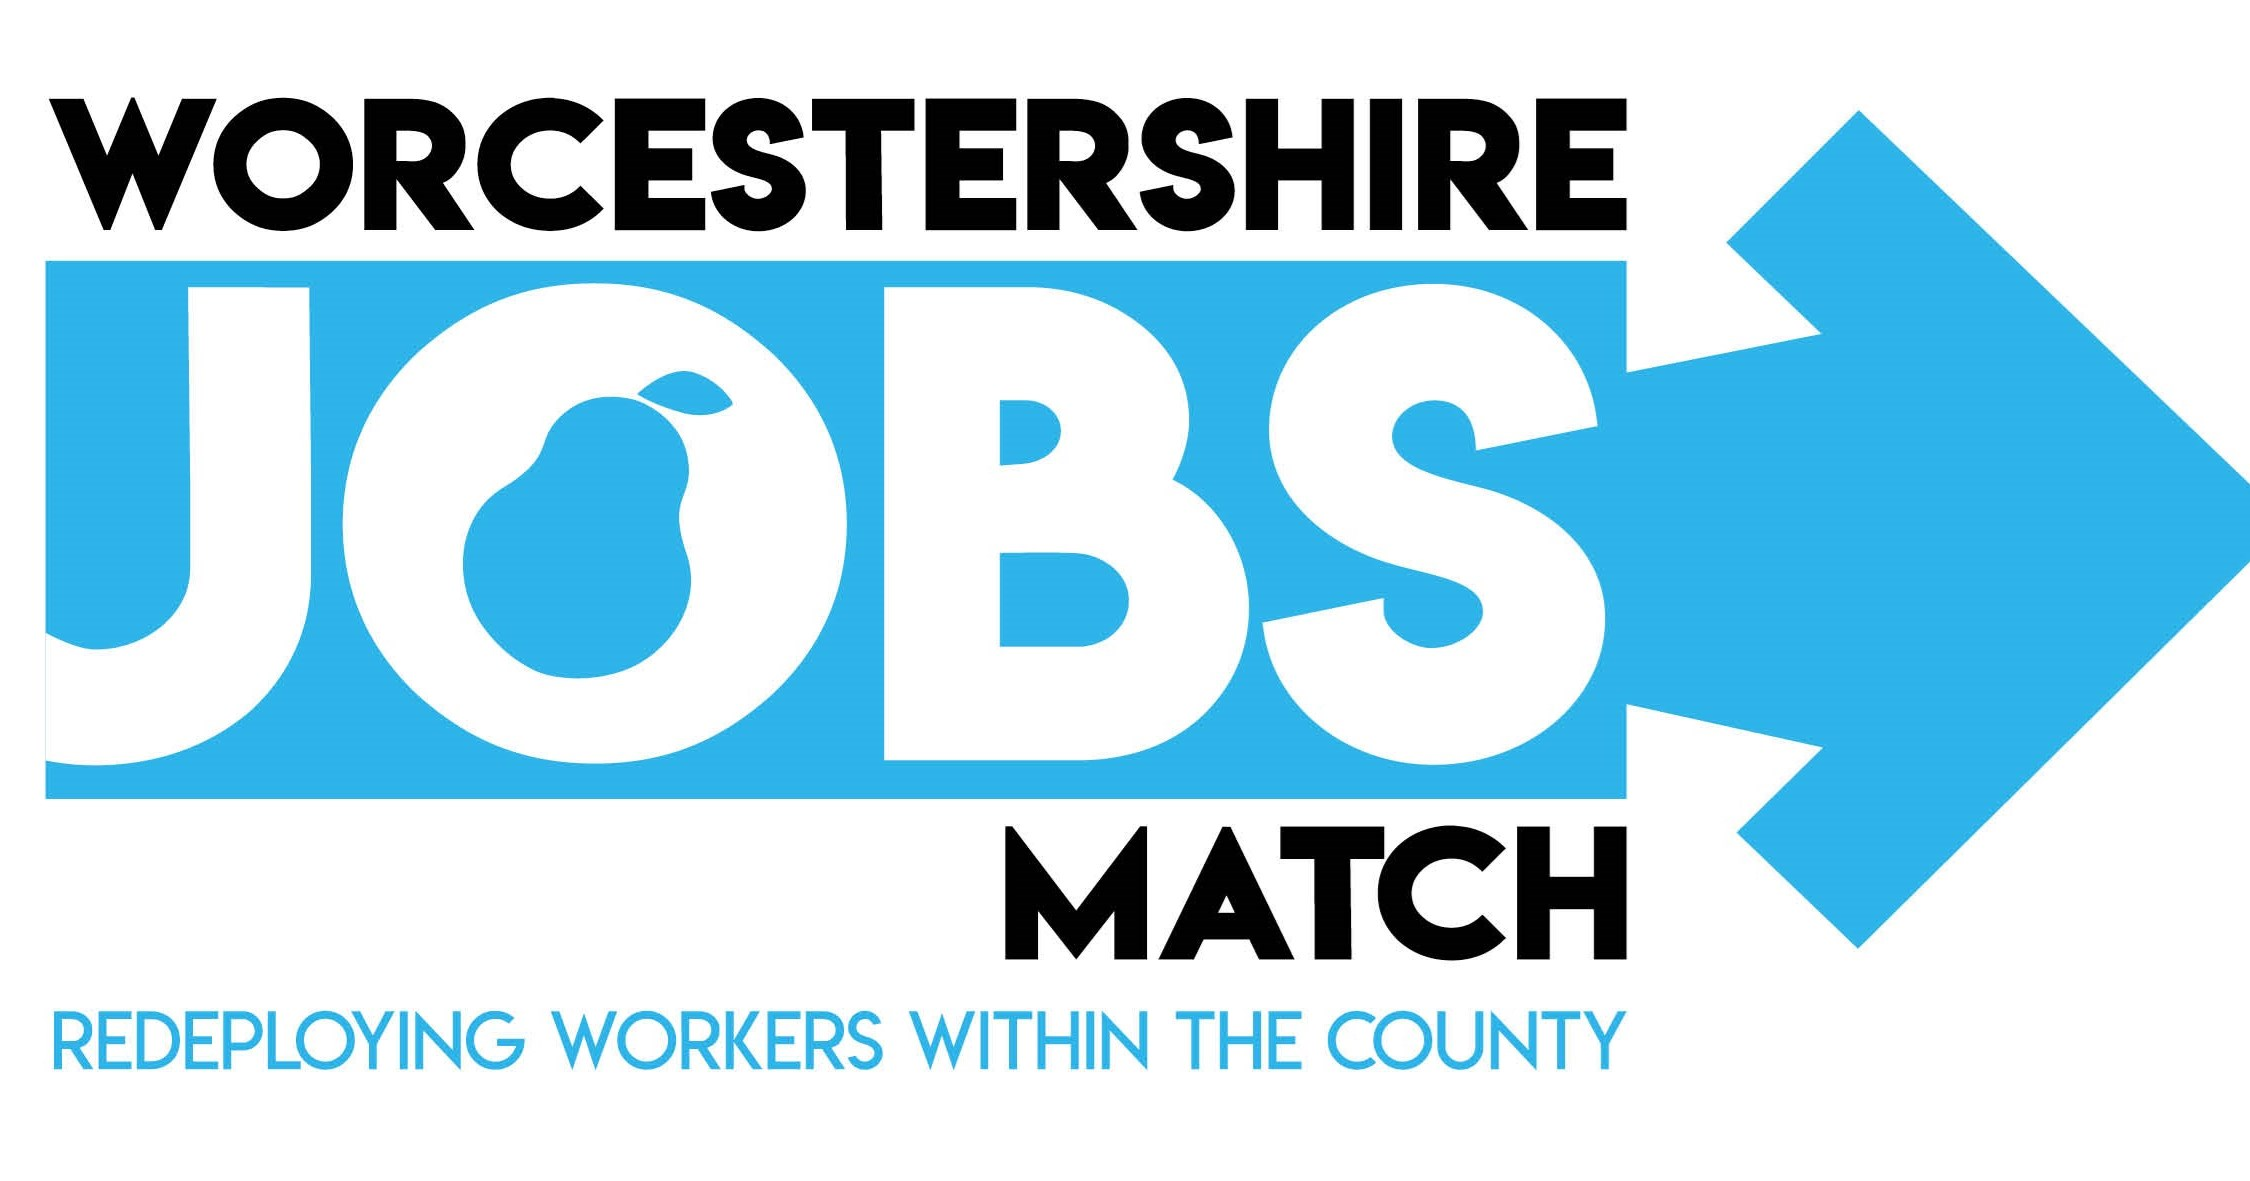 worcestershire jobs match logo